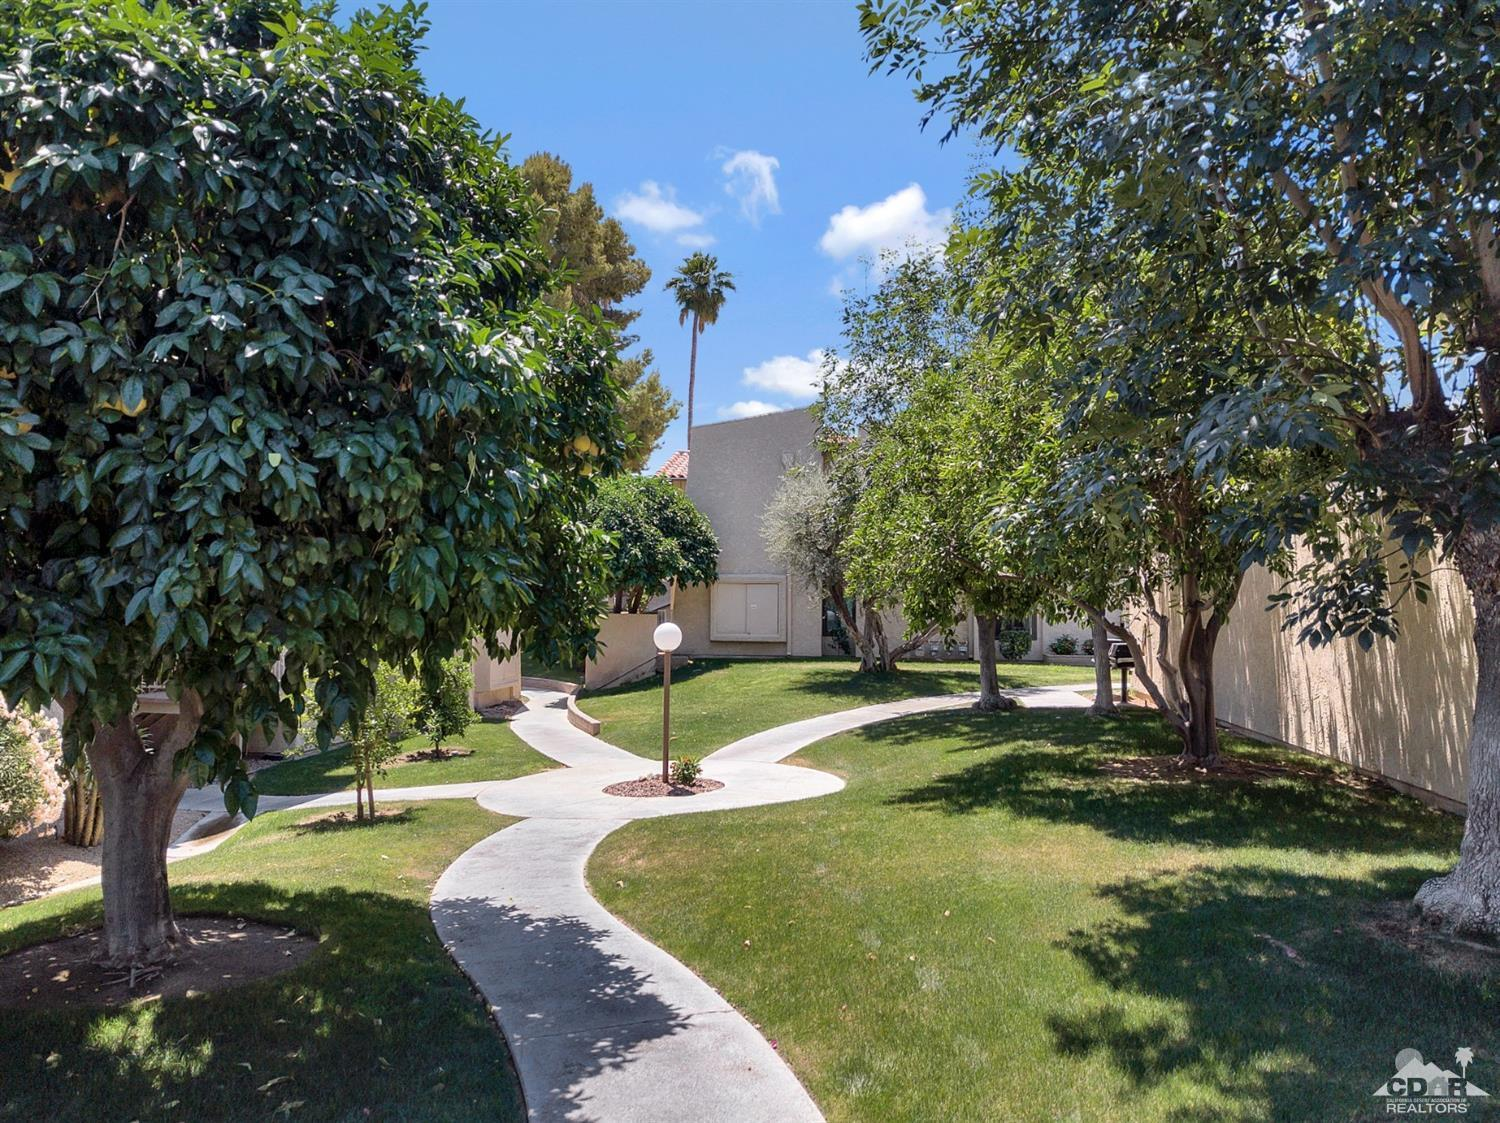 2170 S Palm Canyon Drive, Palm Springs, California 92264, 2 Bedrooms Bedrooms, ,2 BathroomsBathrooms,Residential,Sold,2170 S Palm Canyon Drive,219013525